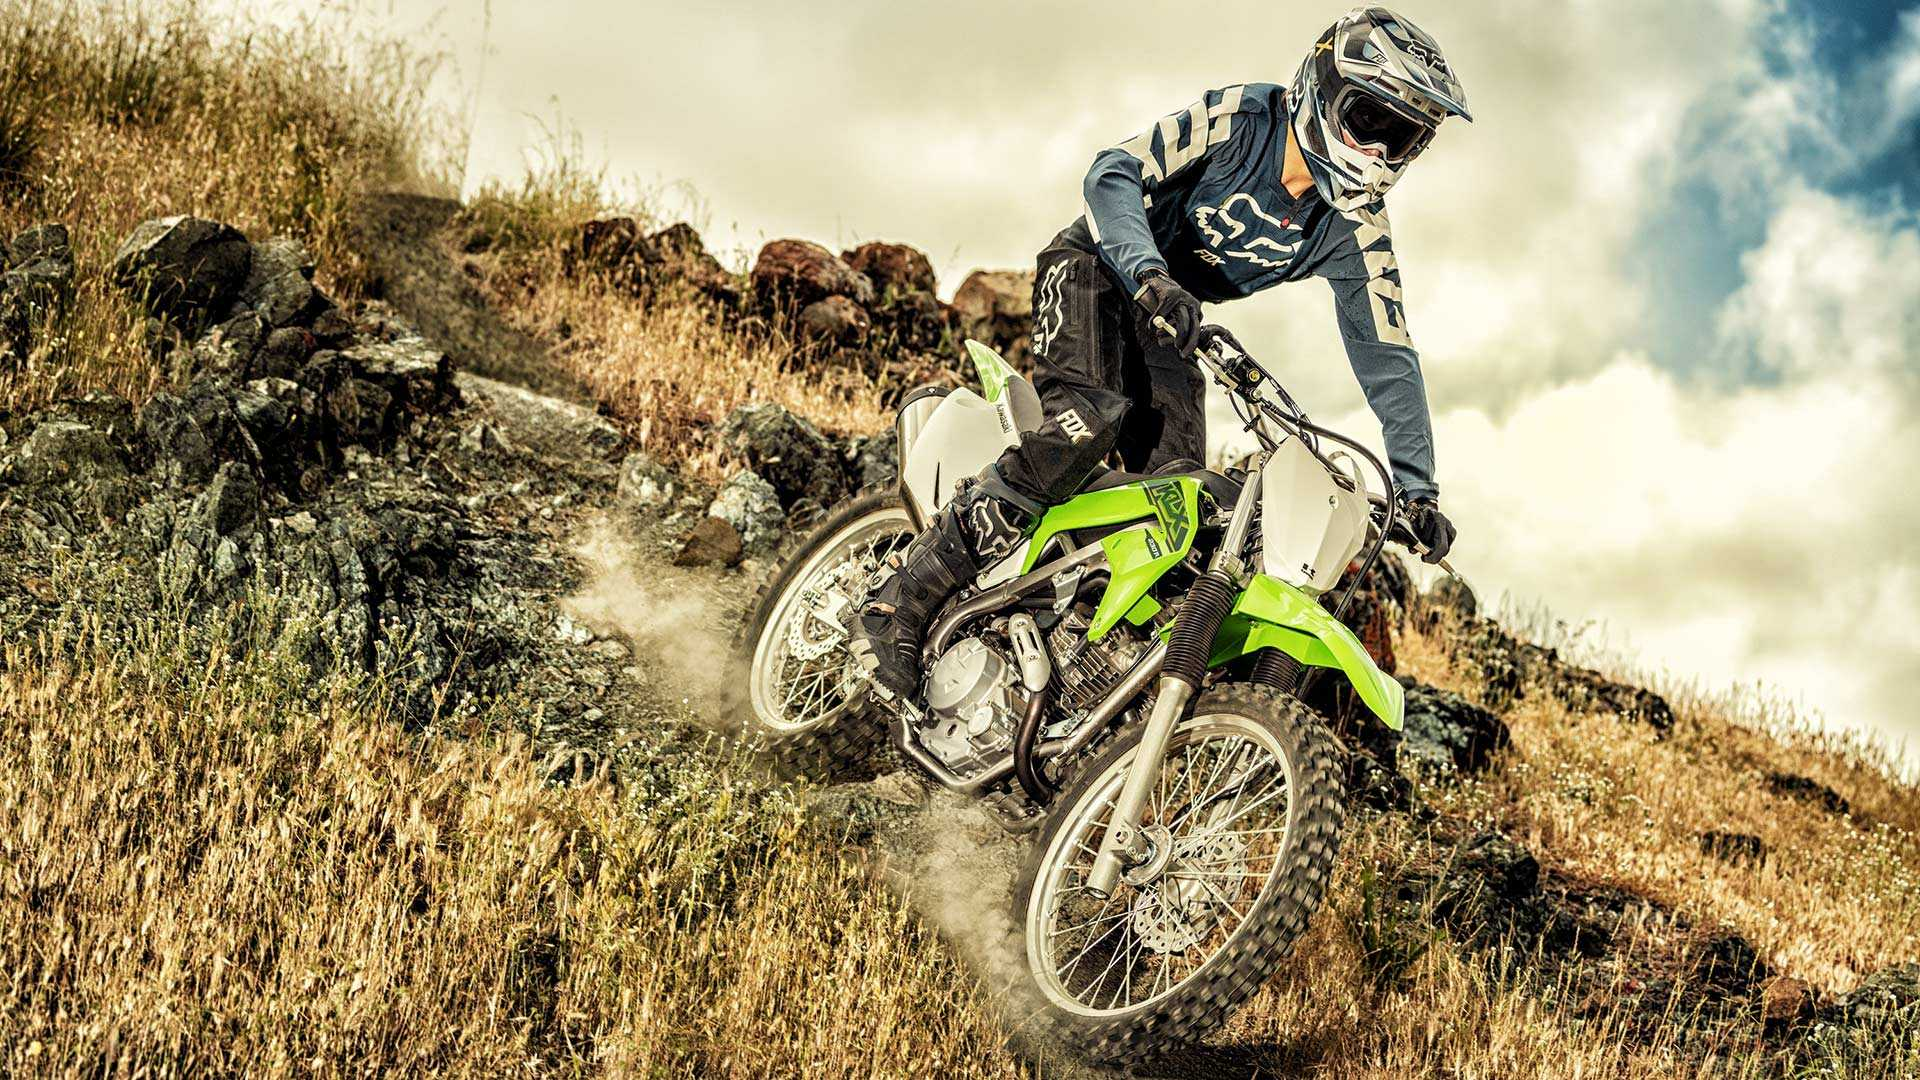 Kawasaki Confirms 2021 KLX Off-Road Lineup